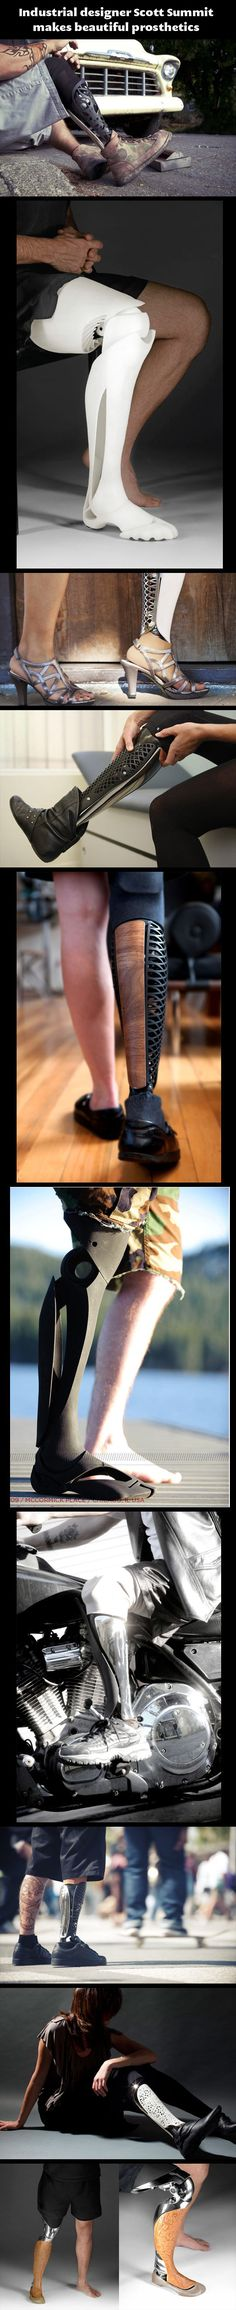 If I ever need a prosthetic leg I'm going to get one of these-Designer Scott Summit